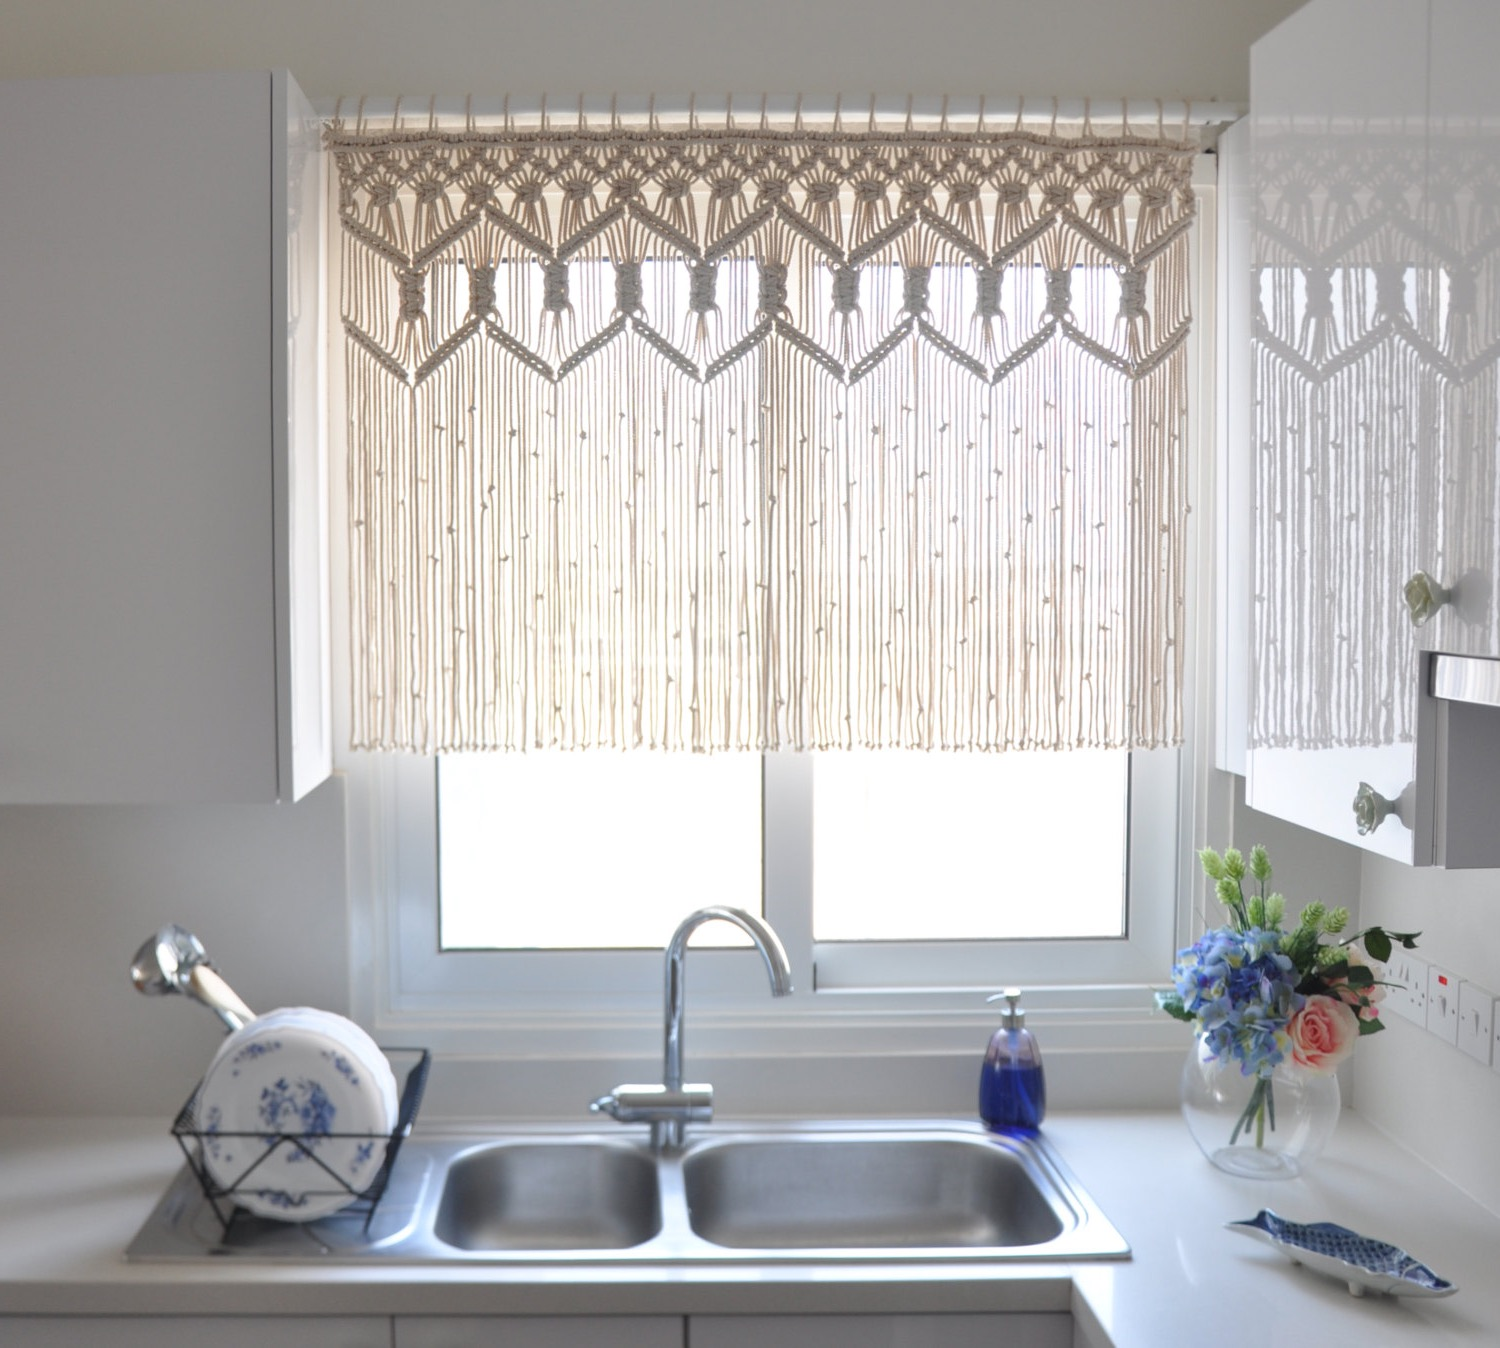 Custom Kitchen Macrame Curtains (View 3 of 12)